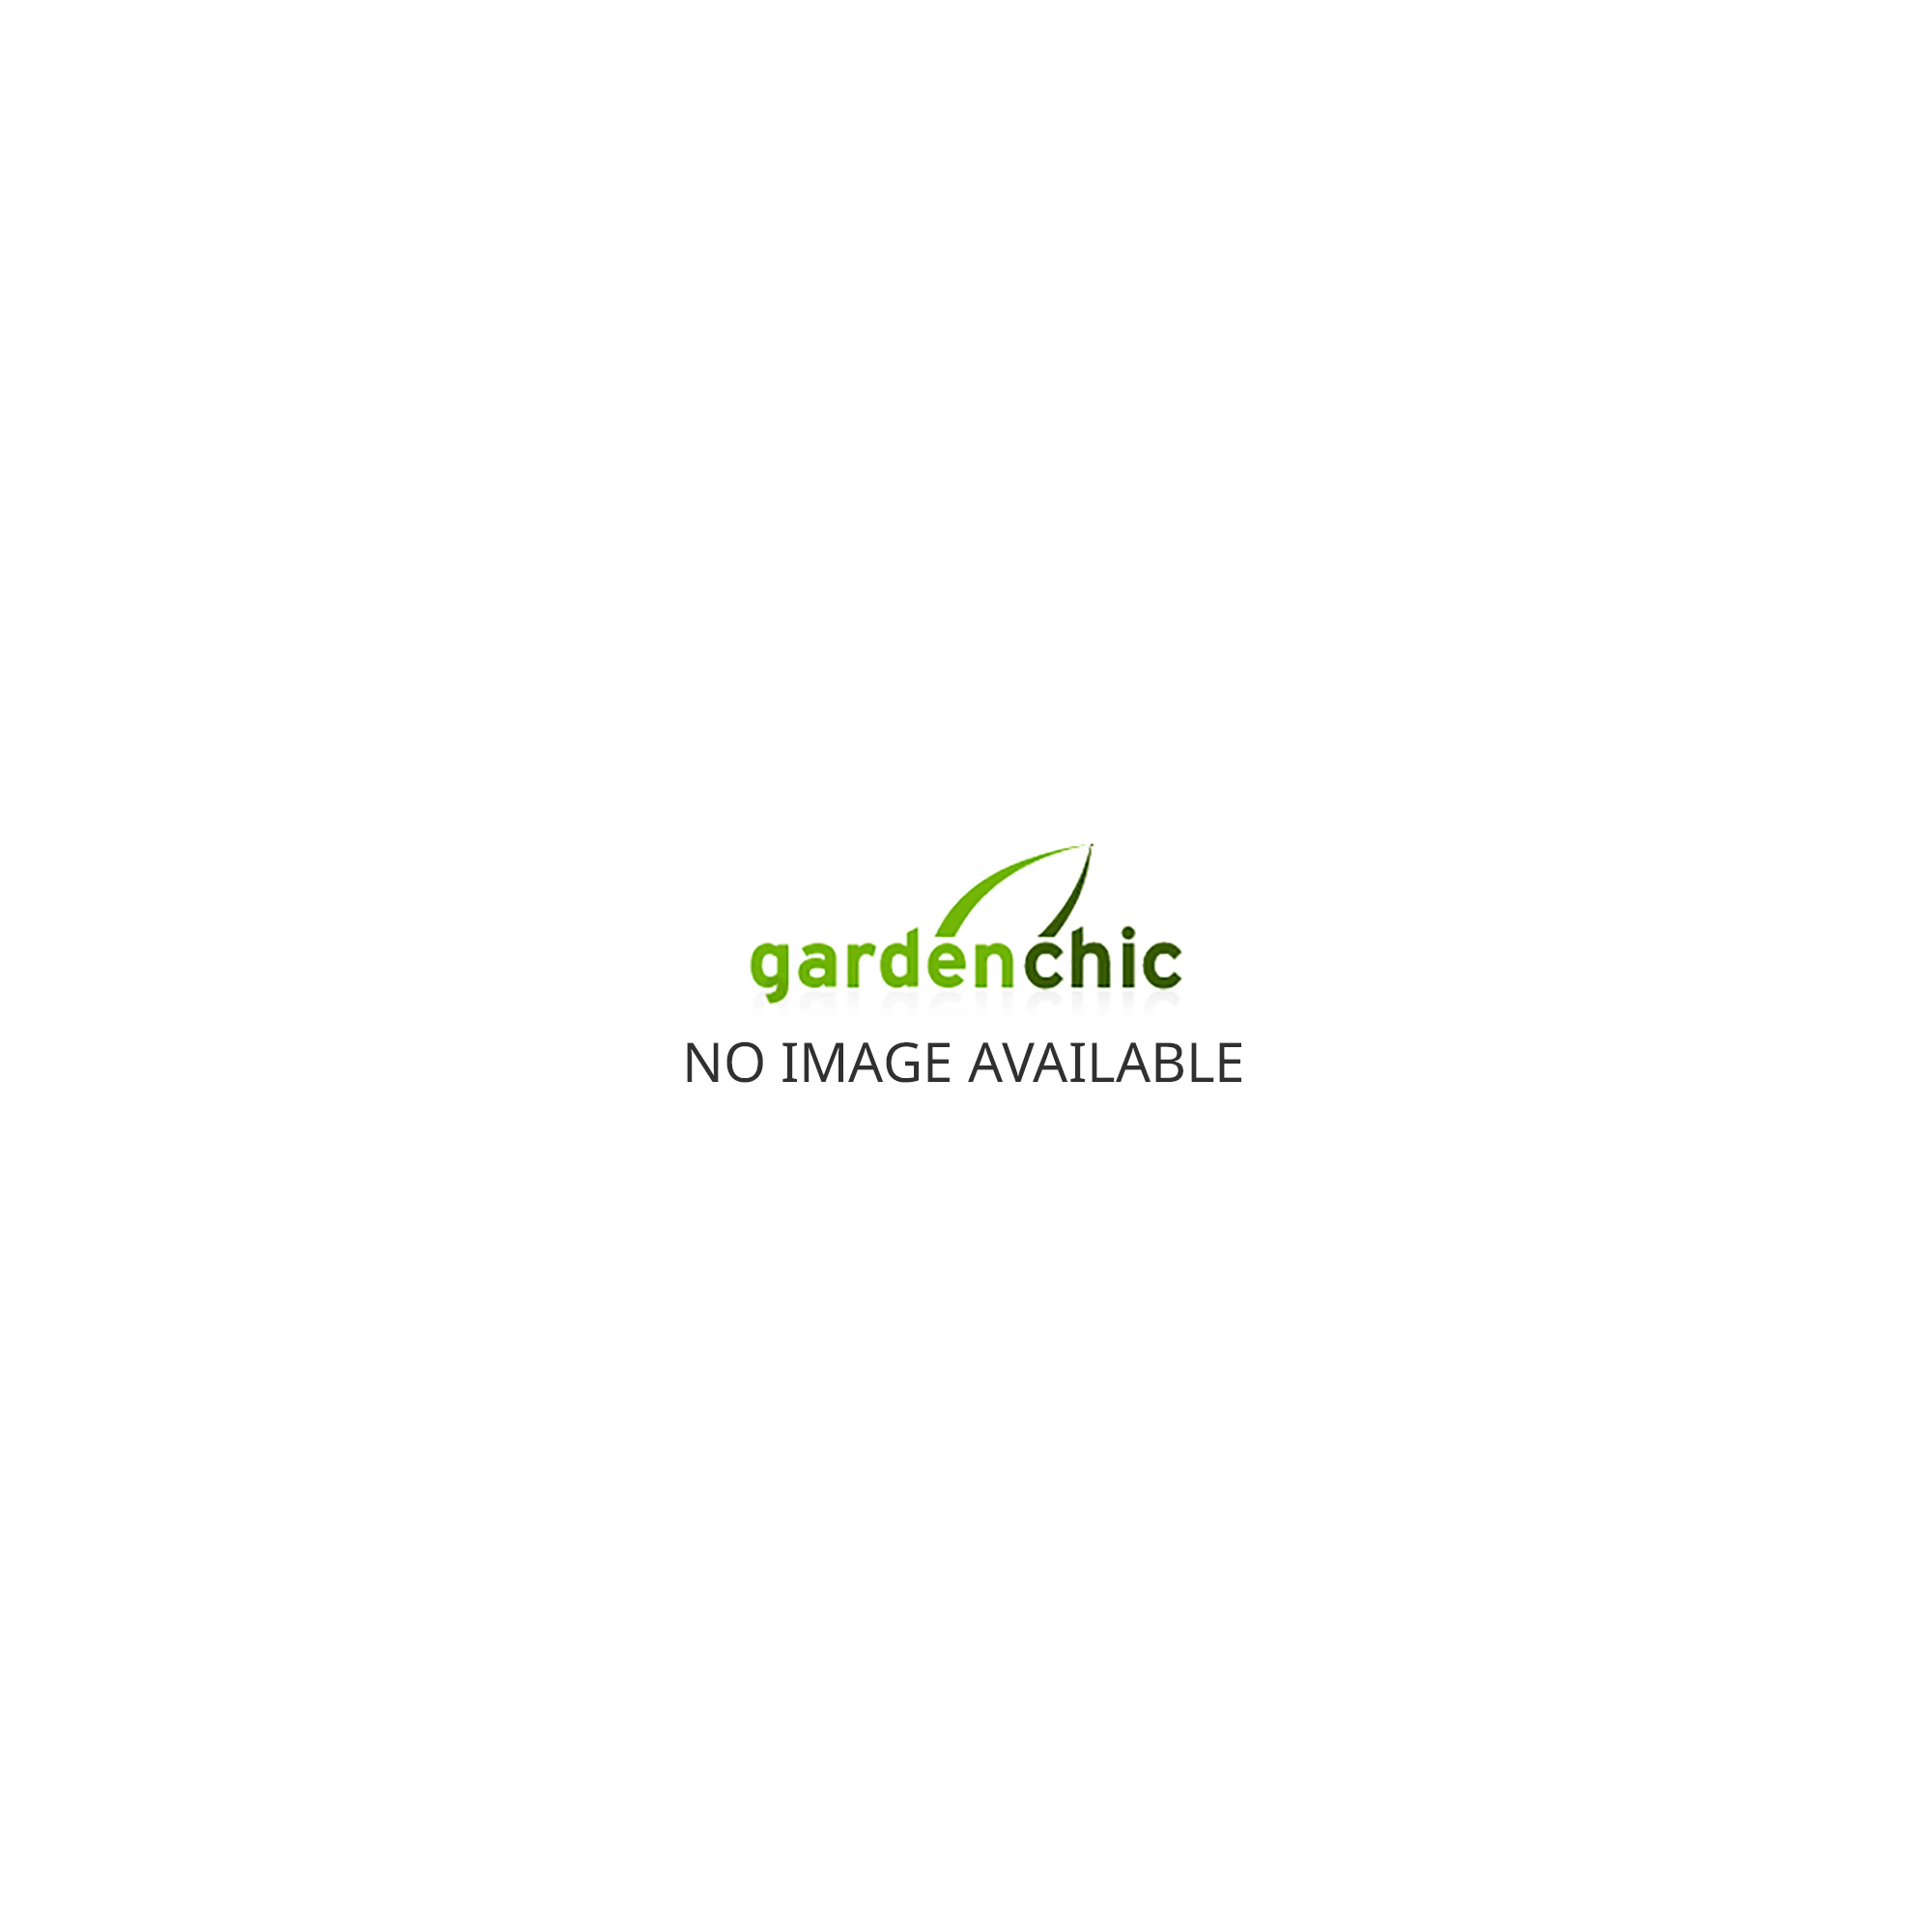 Haemmerlin Pro Select Expert 150LTR Wheelbarrow